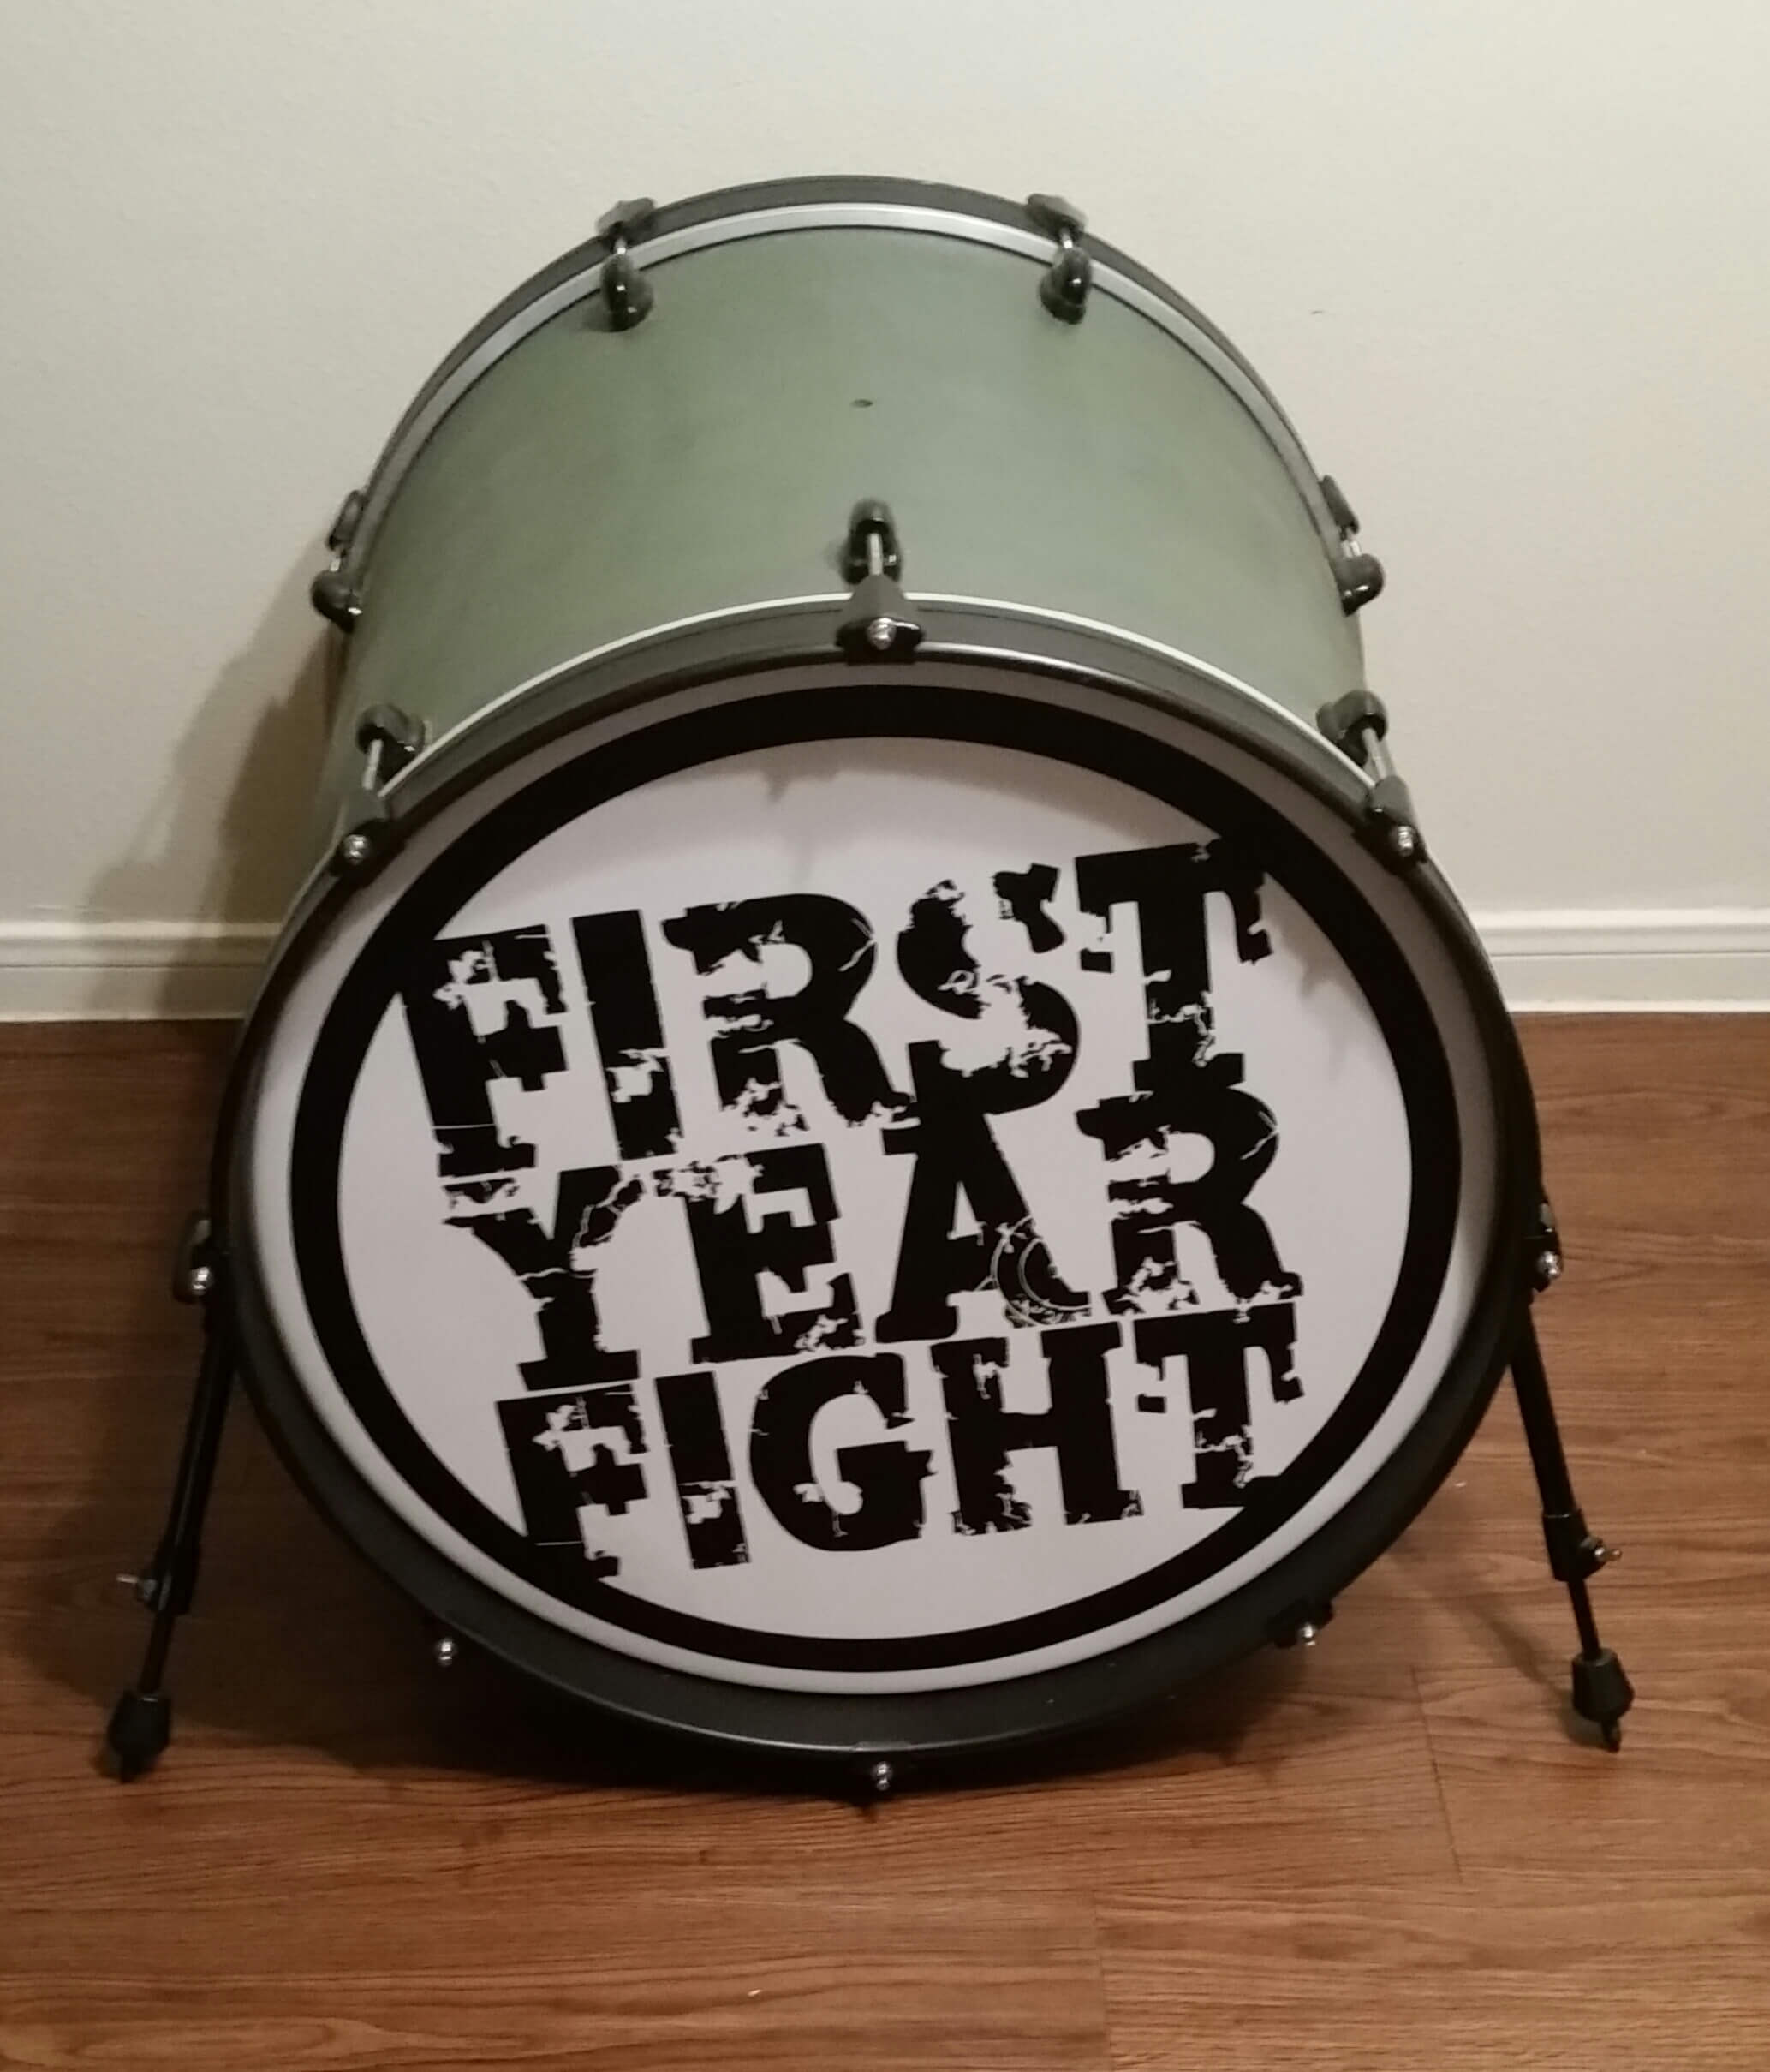 First Year Fight, drum decal, kick drum decals, drum stickers, custom, great prices, die-cut, die cut vinyl decals, music band, promotion